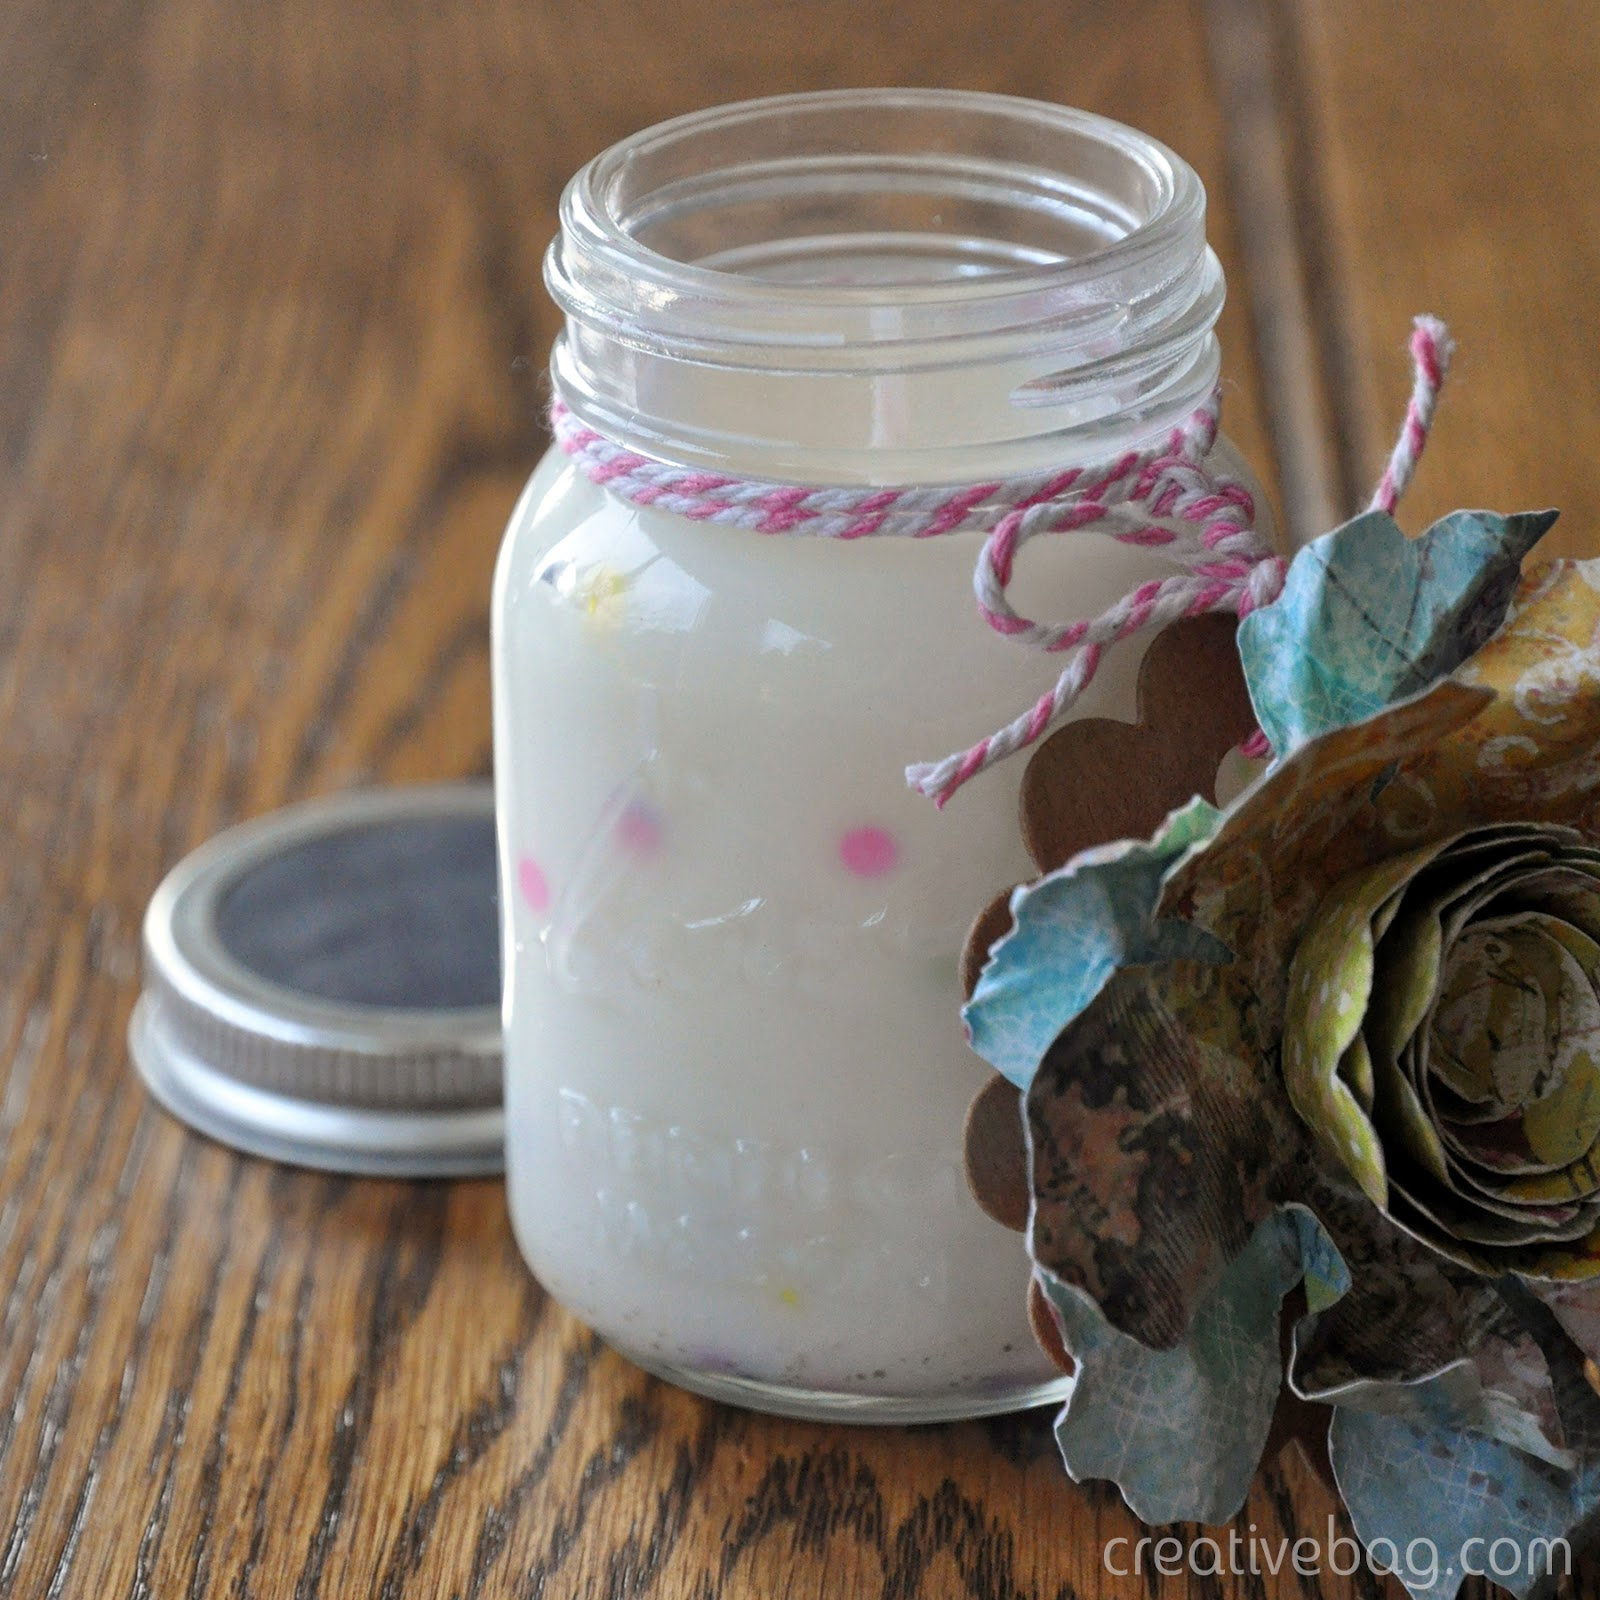 diy candle favors | Creative Bag